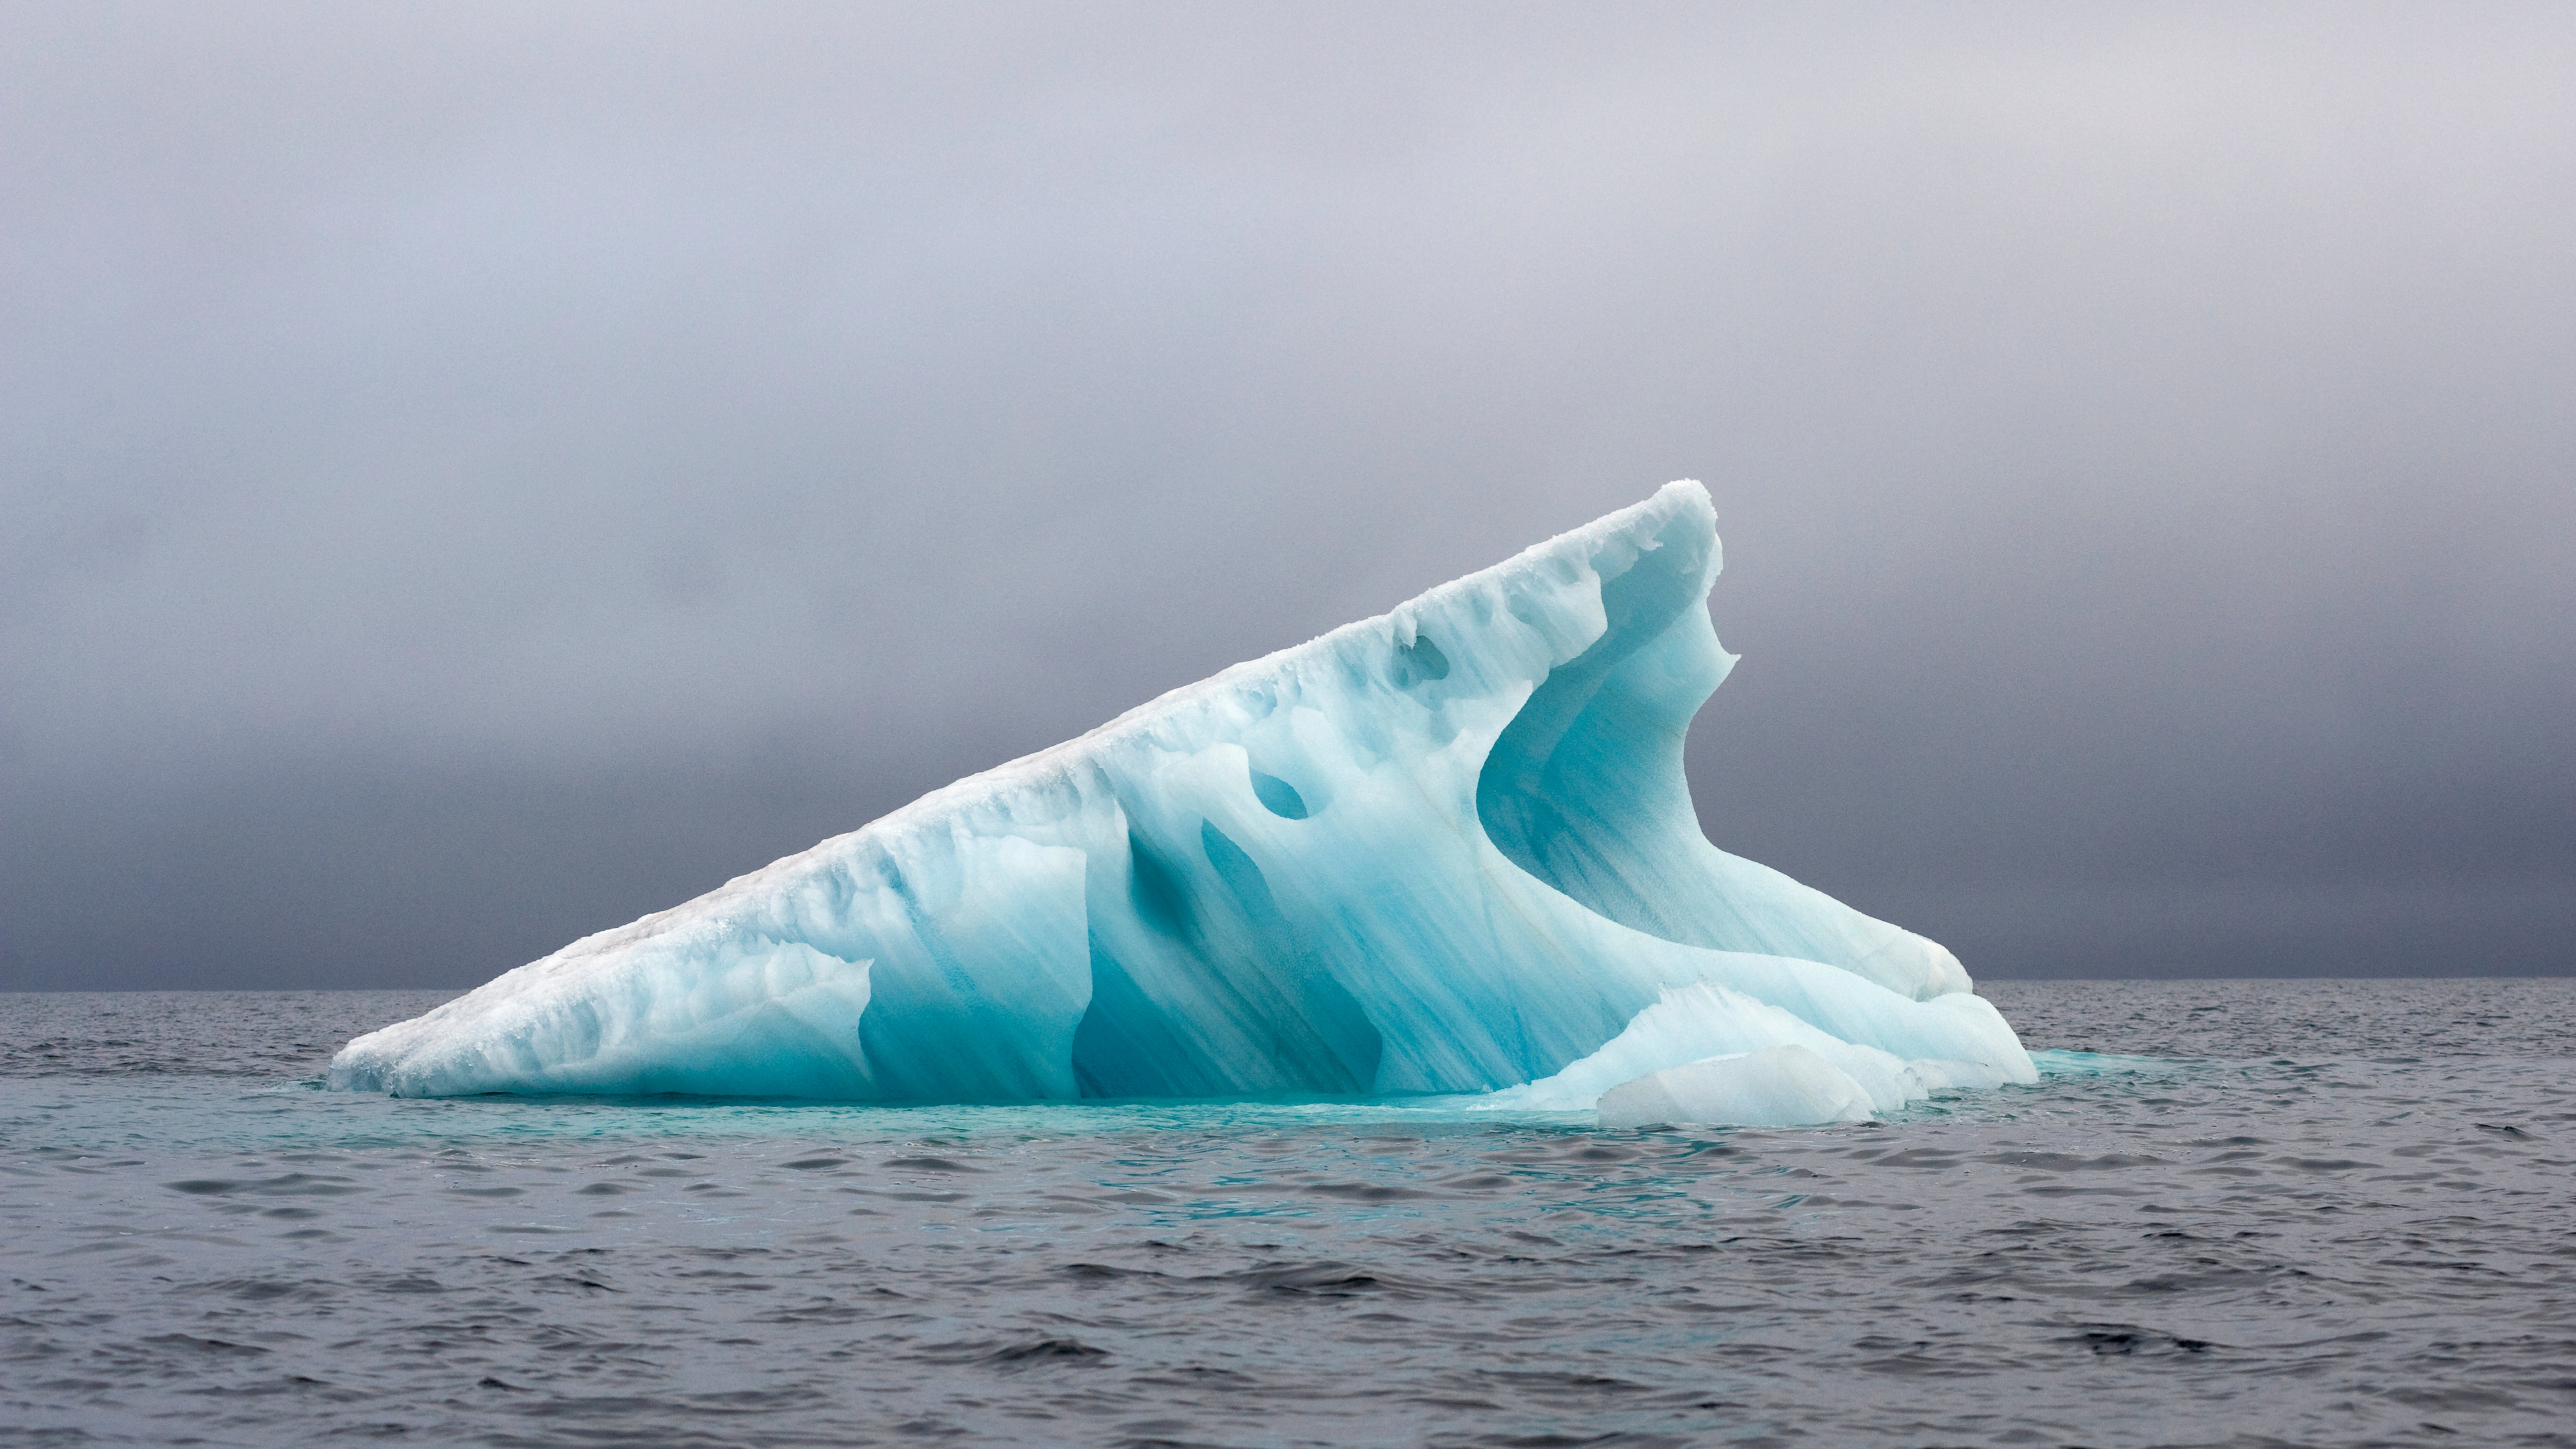 Iceberg and climate change